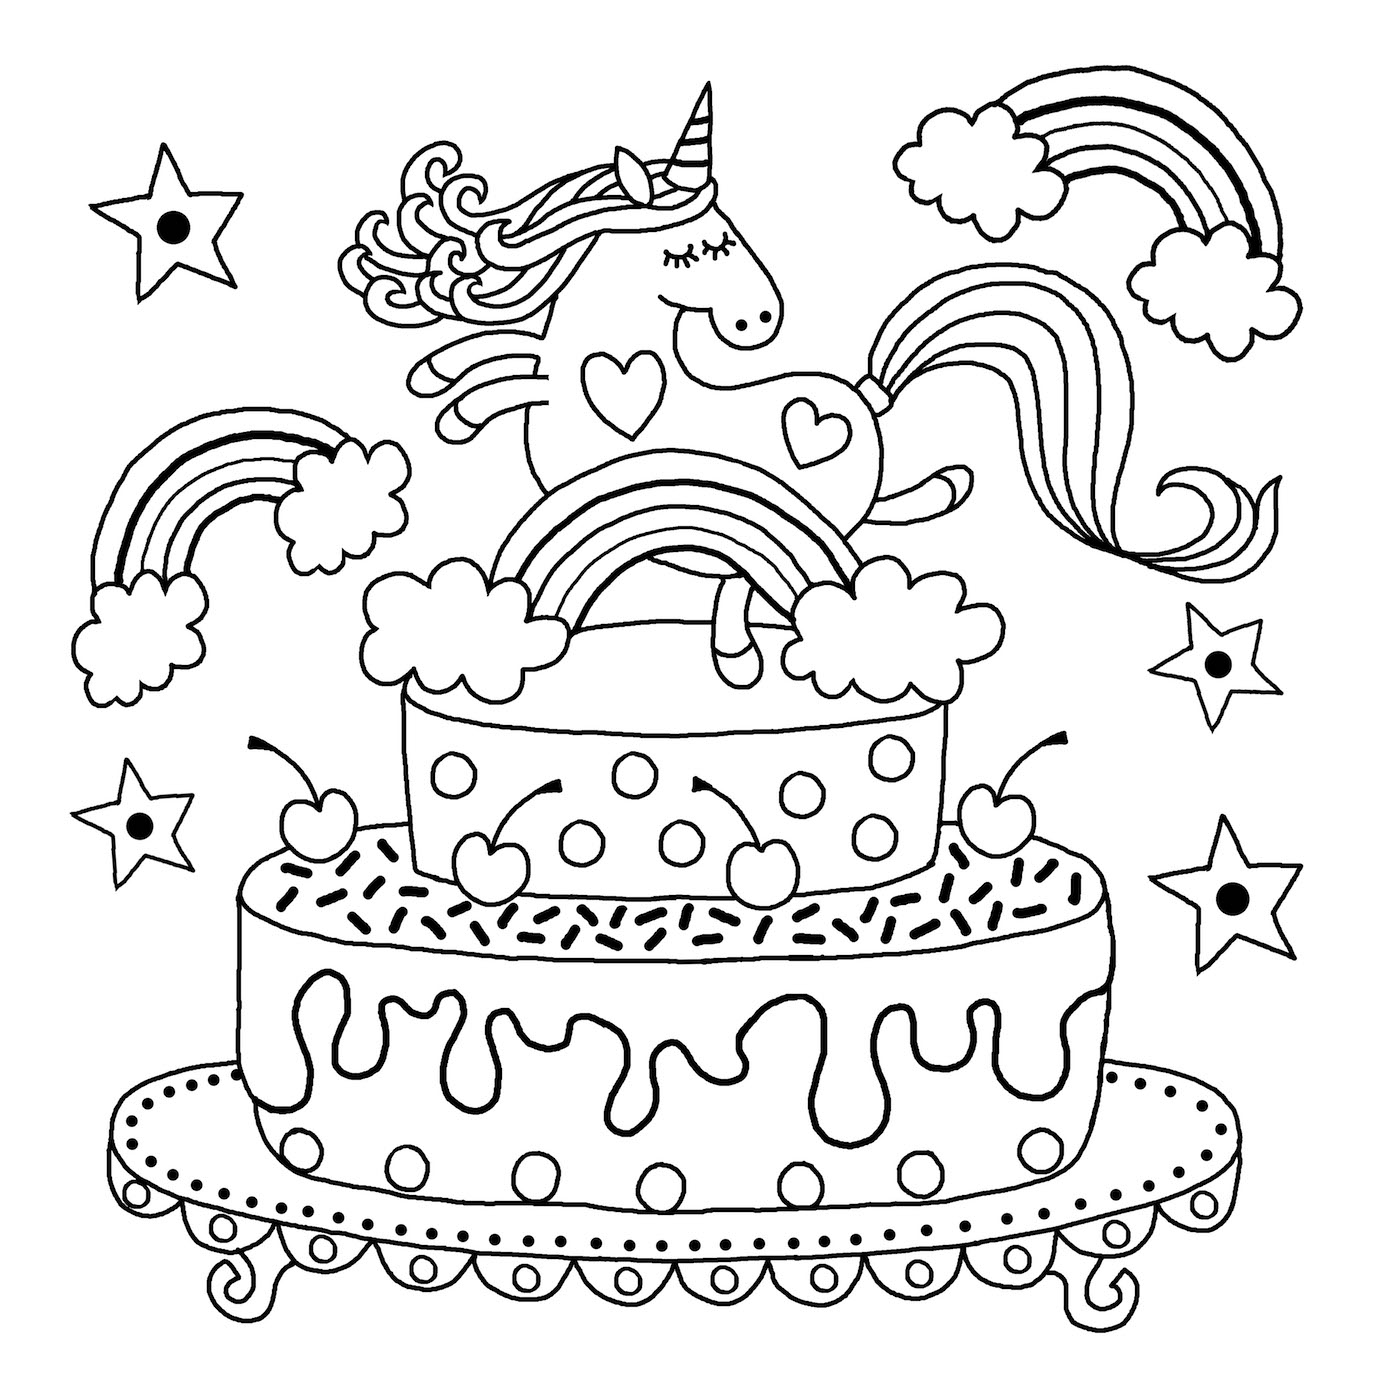 coloring pages unicorn printable unicorn coloring pages to download and print for free unicorn coloring pages printable